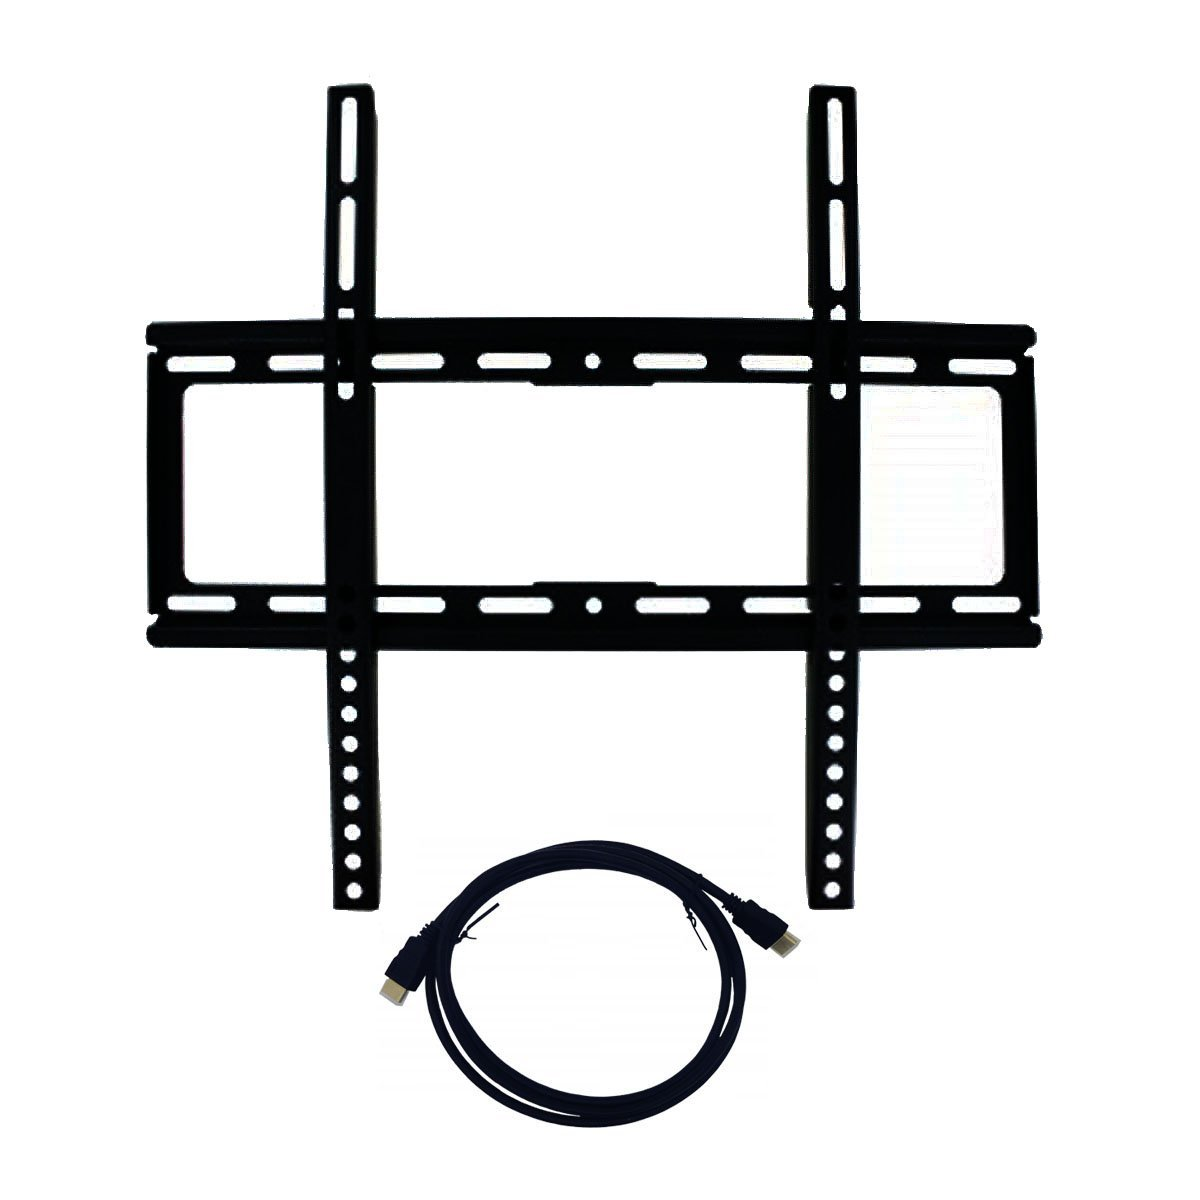 """Best Medium Sized Fixed Universal Flat Panel Screen TV Low Profile Wall Mount Bracket with 6"""""""" HDMI Cable Bundle 26"""""""" - 47"""""""" Television Heavy Duty Easy Installation Back to School College Supplies"""